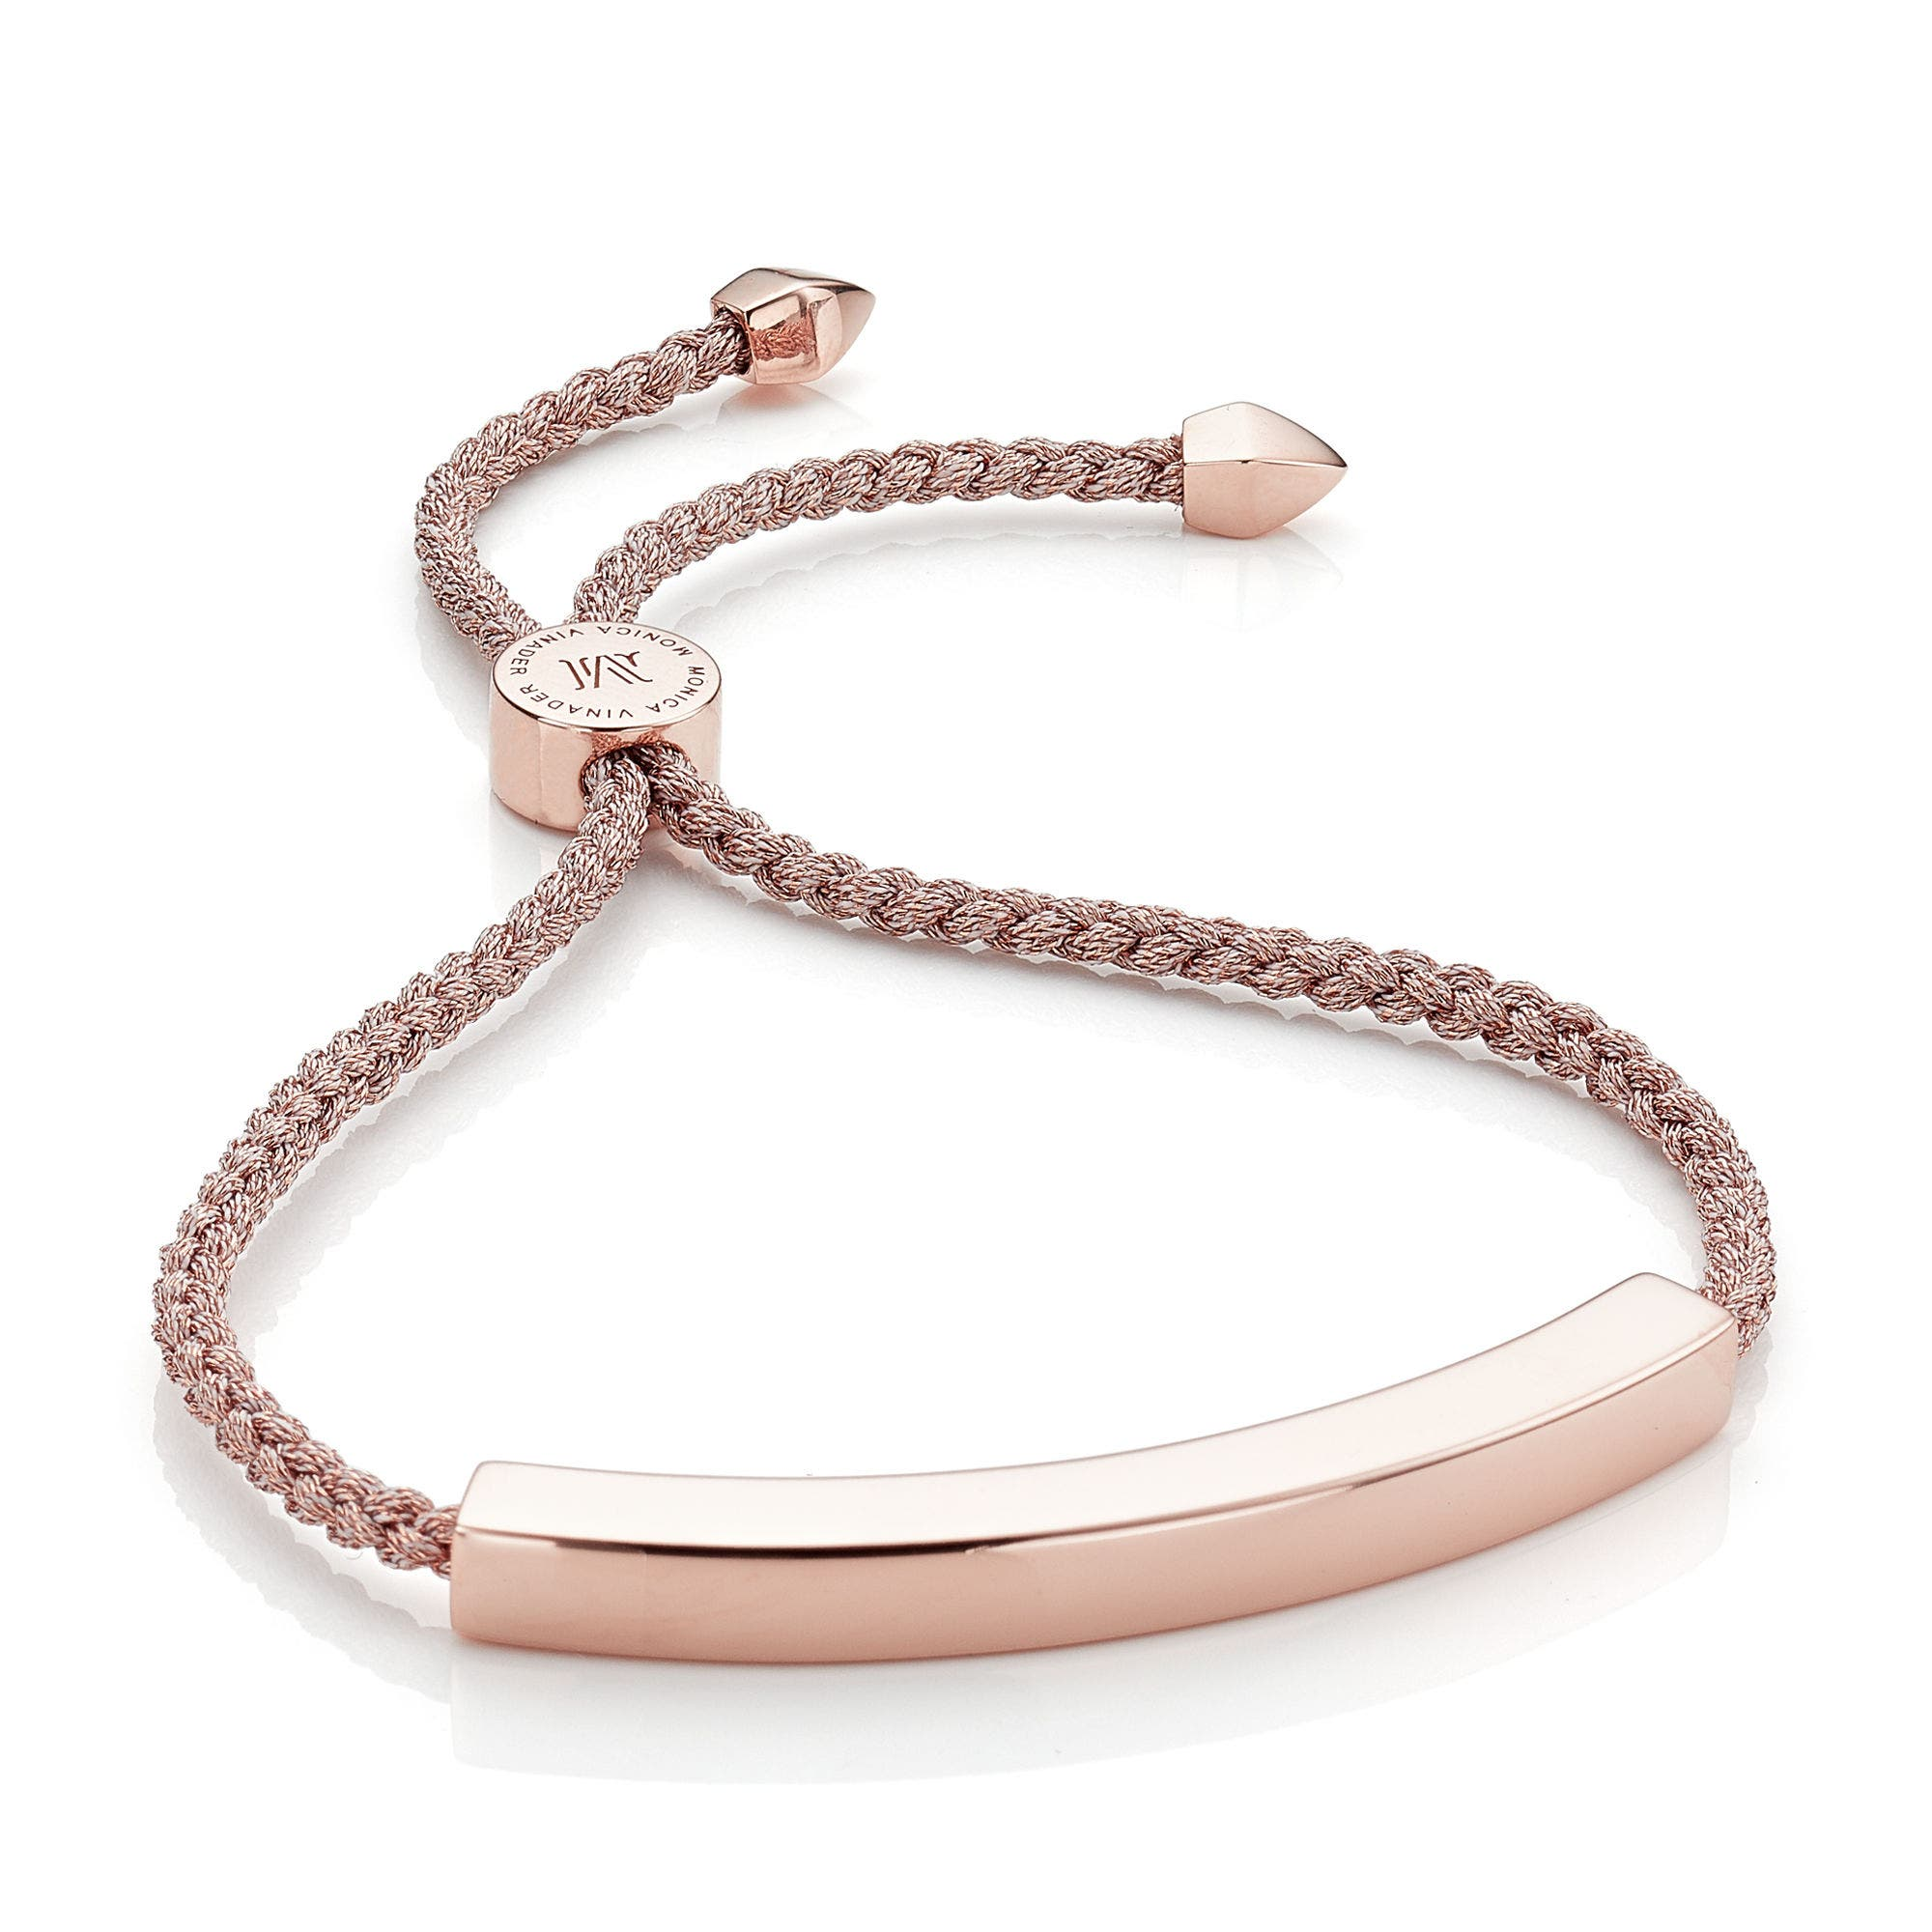 Engravable Large Linear Friendship Bracelet,                             Main thumbnail 1, color,                             Metallic/ Rose Gold